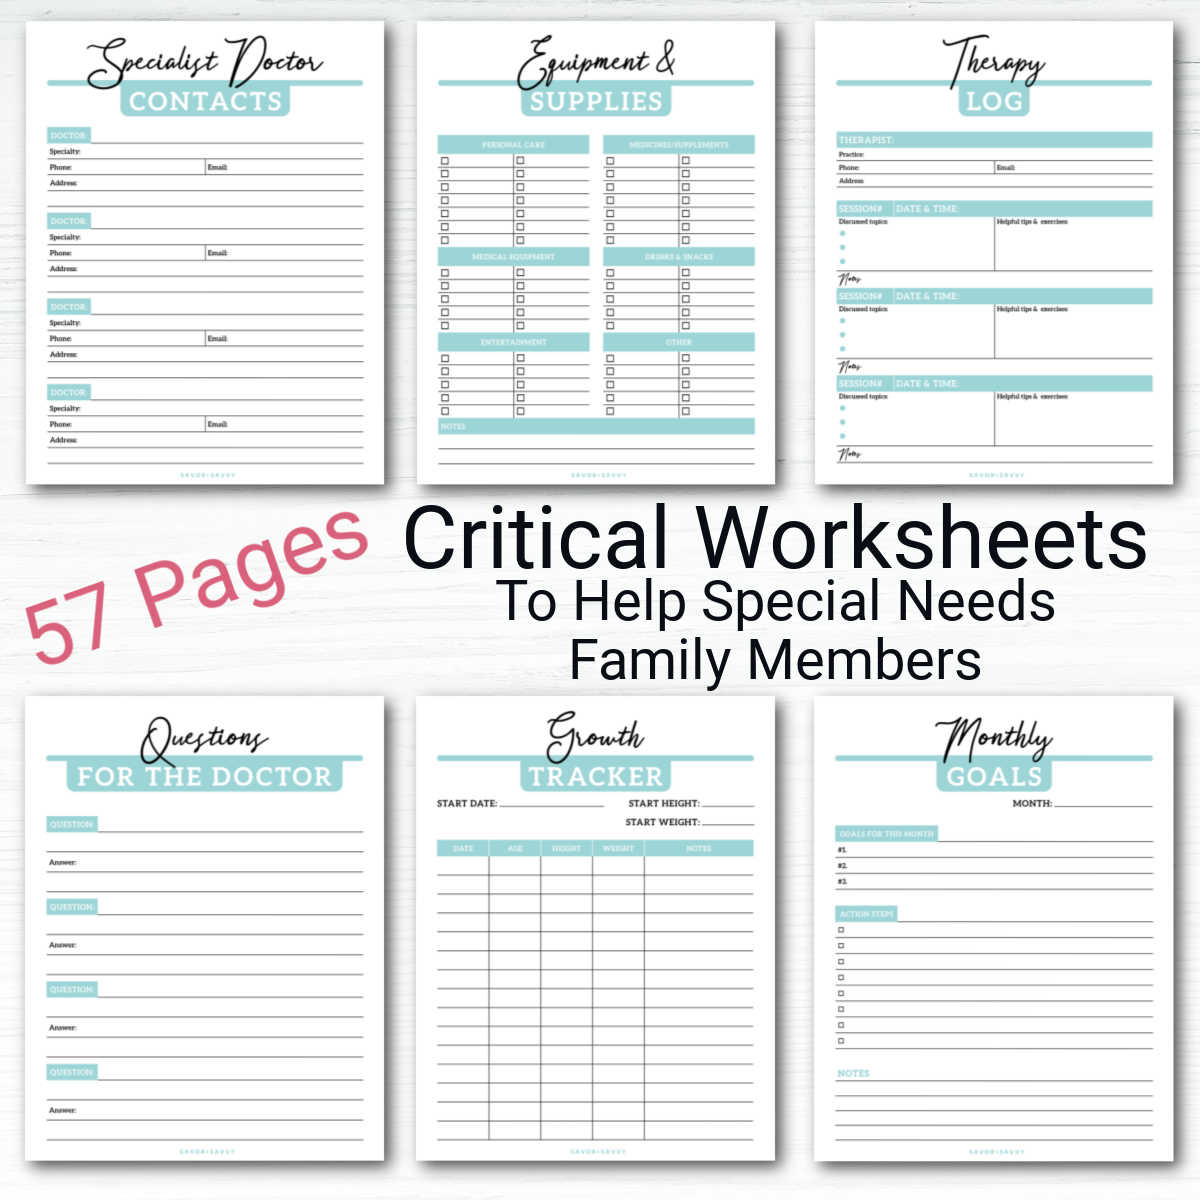 six worksheets on a white background with text to show these critical worksheets and that there are 57 pages in the entire binder.